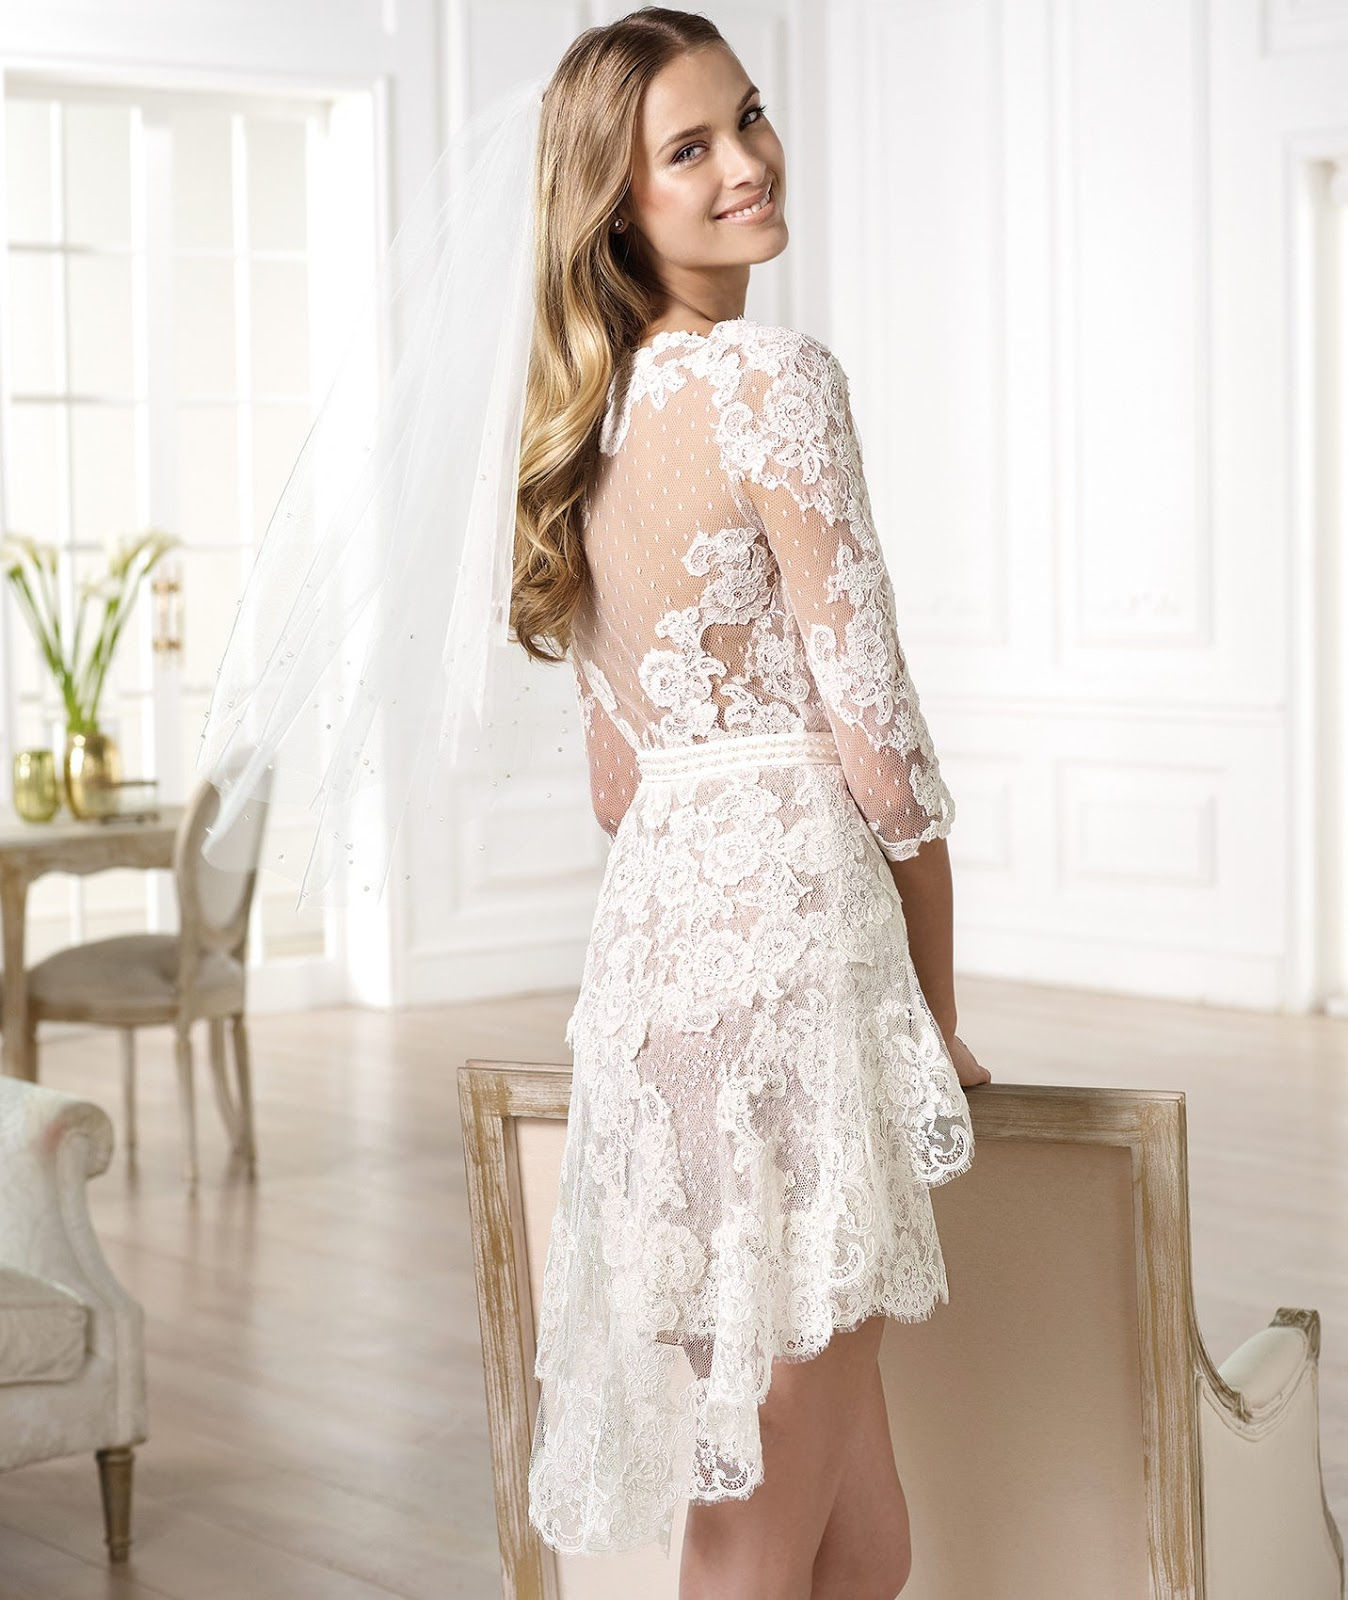 Get feminine look with short lace wedding dresses for Good wedding dresses for short brides